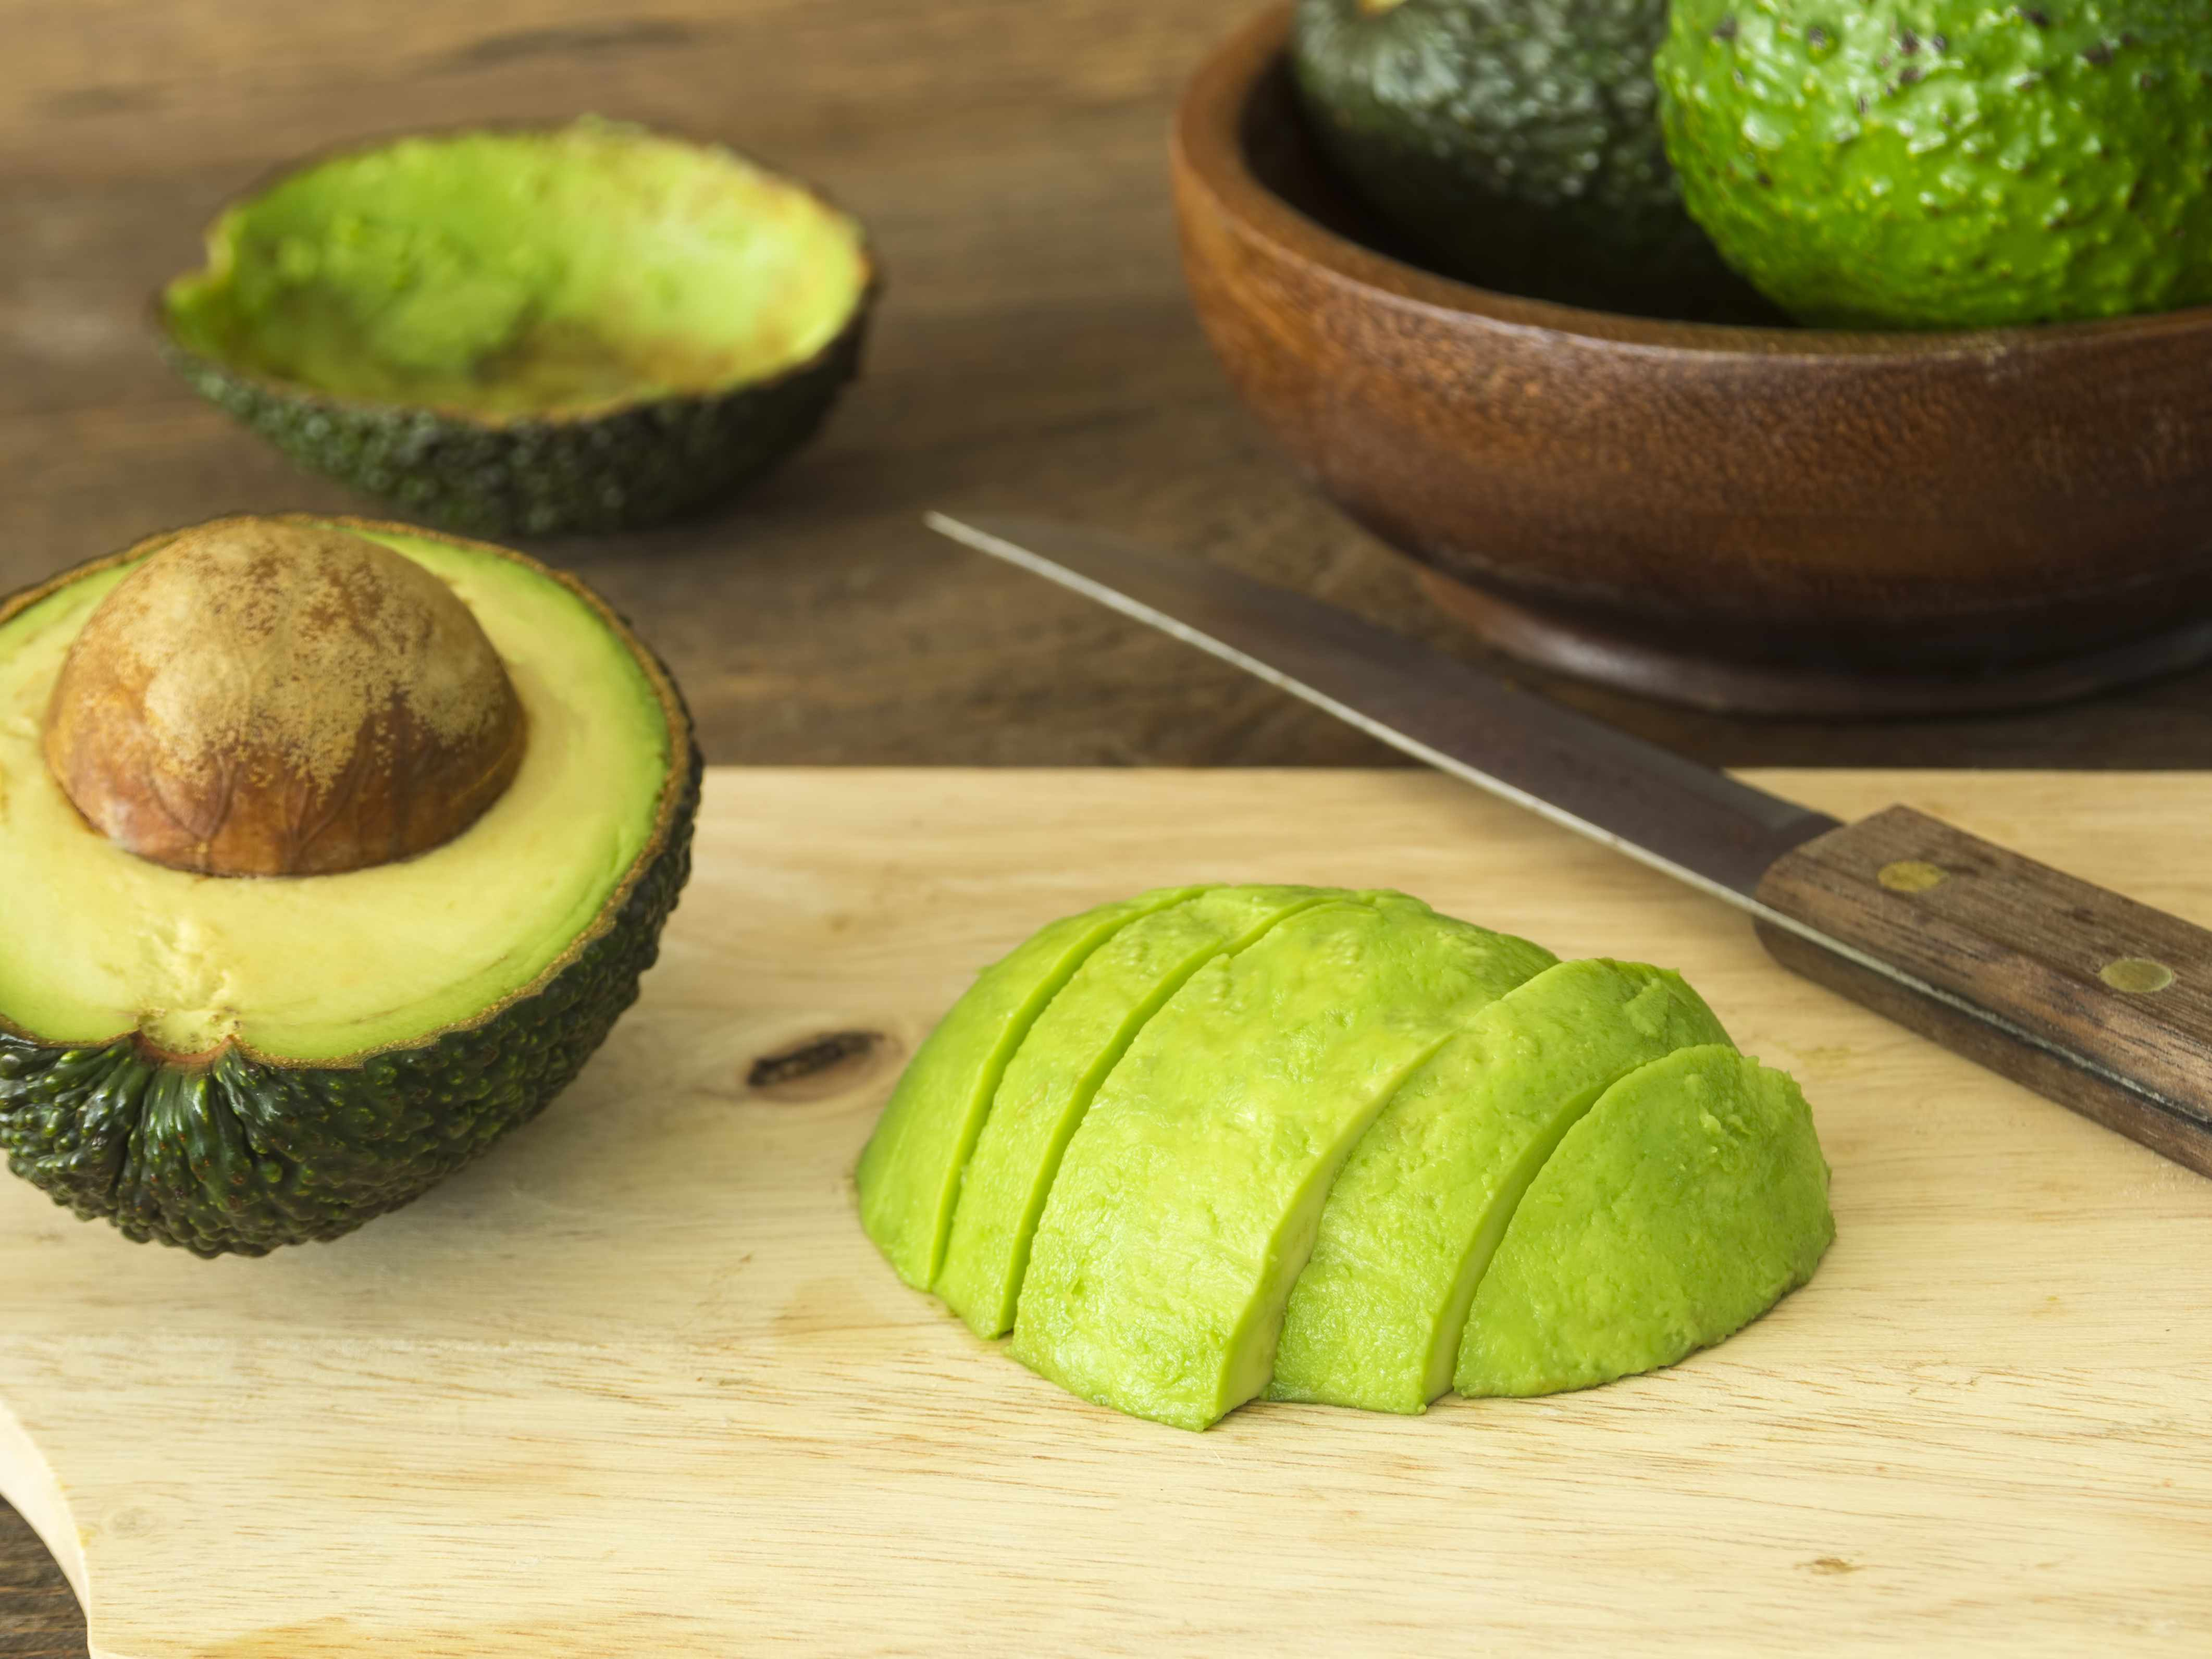 a knife and sliced avocado on a wooden carving board